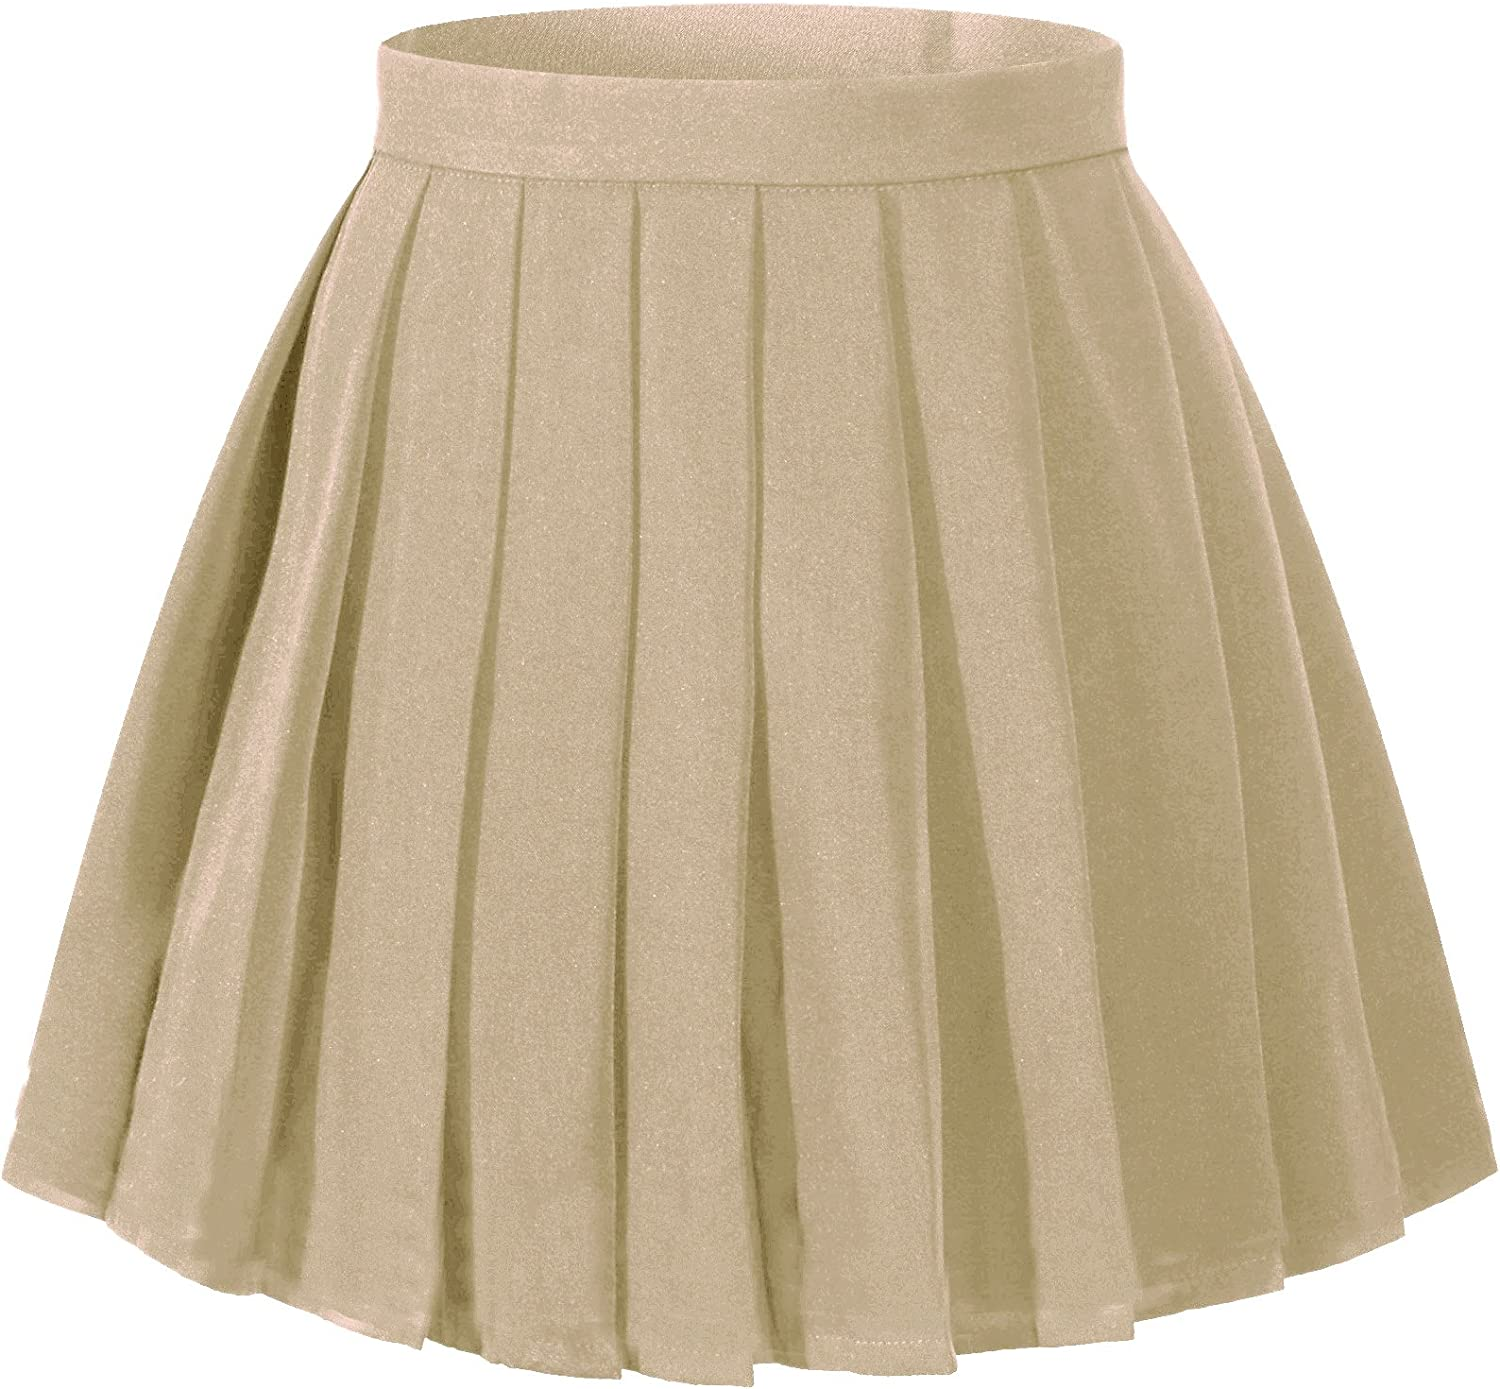 Max 68% OFF Beautifulfashionlife Women's Japan high Pleated High quality new Cosplay Waisted